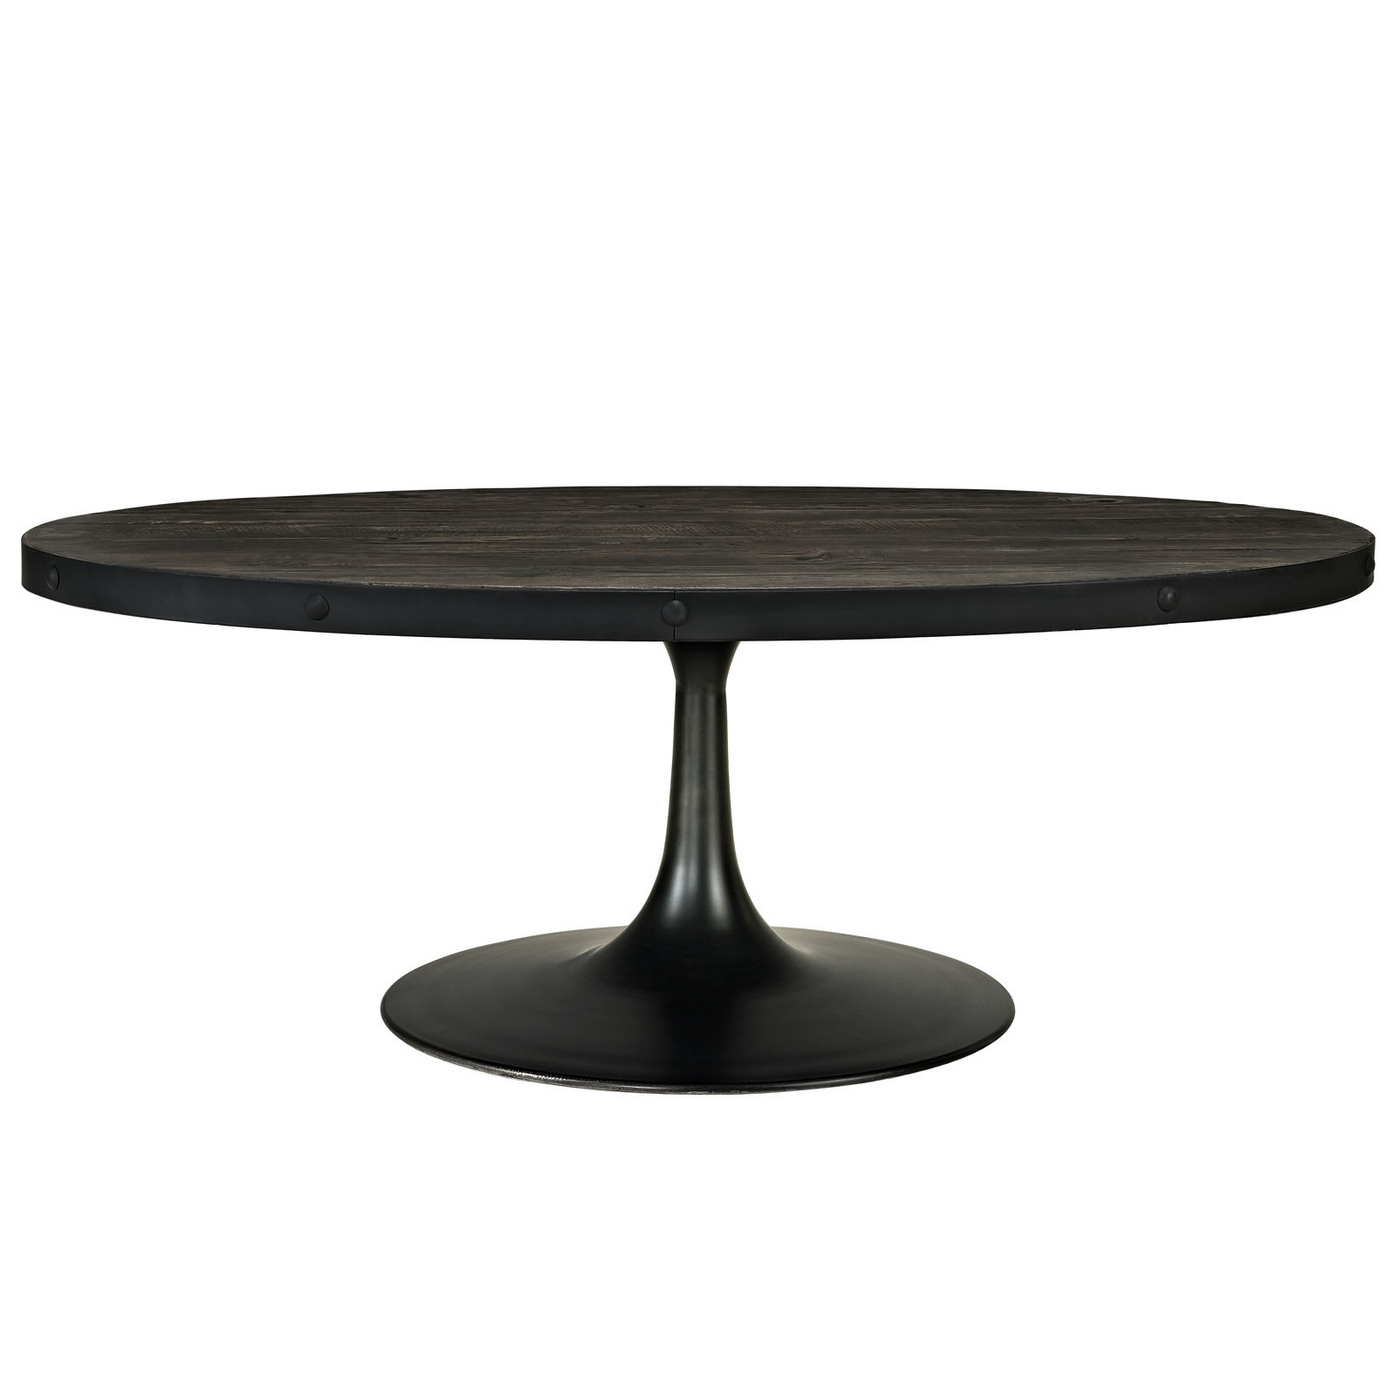 Drive Industrial Modern Round Wood Top Coffee Table W Cast Iron Pedestal Black